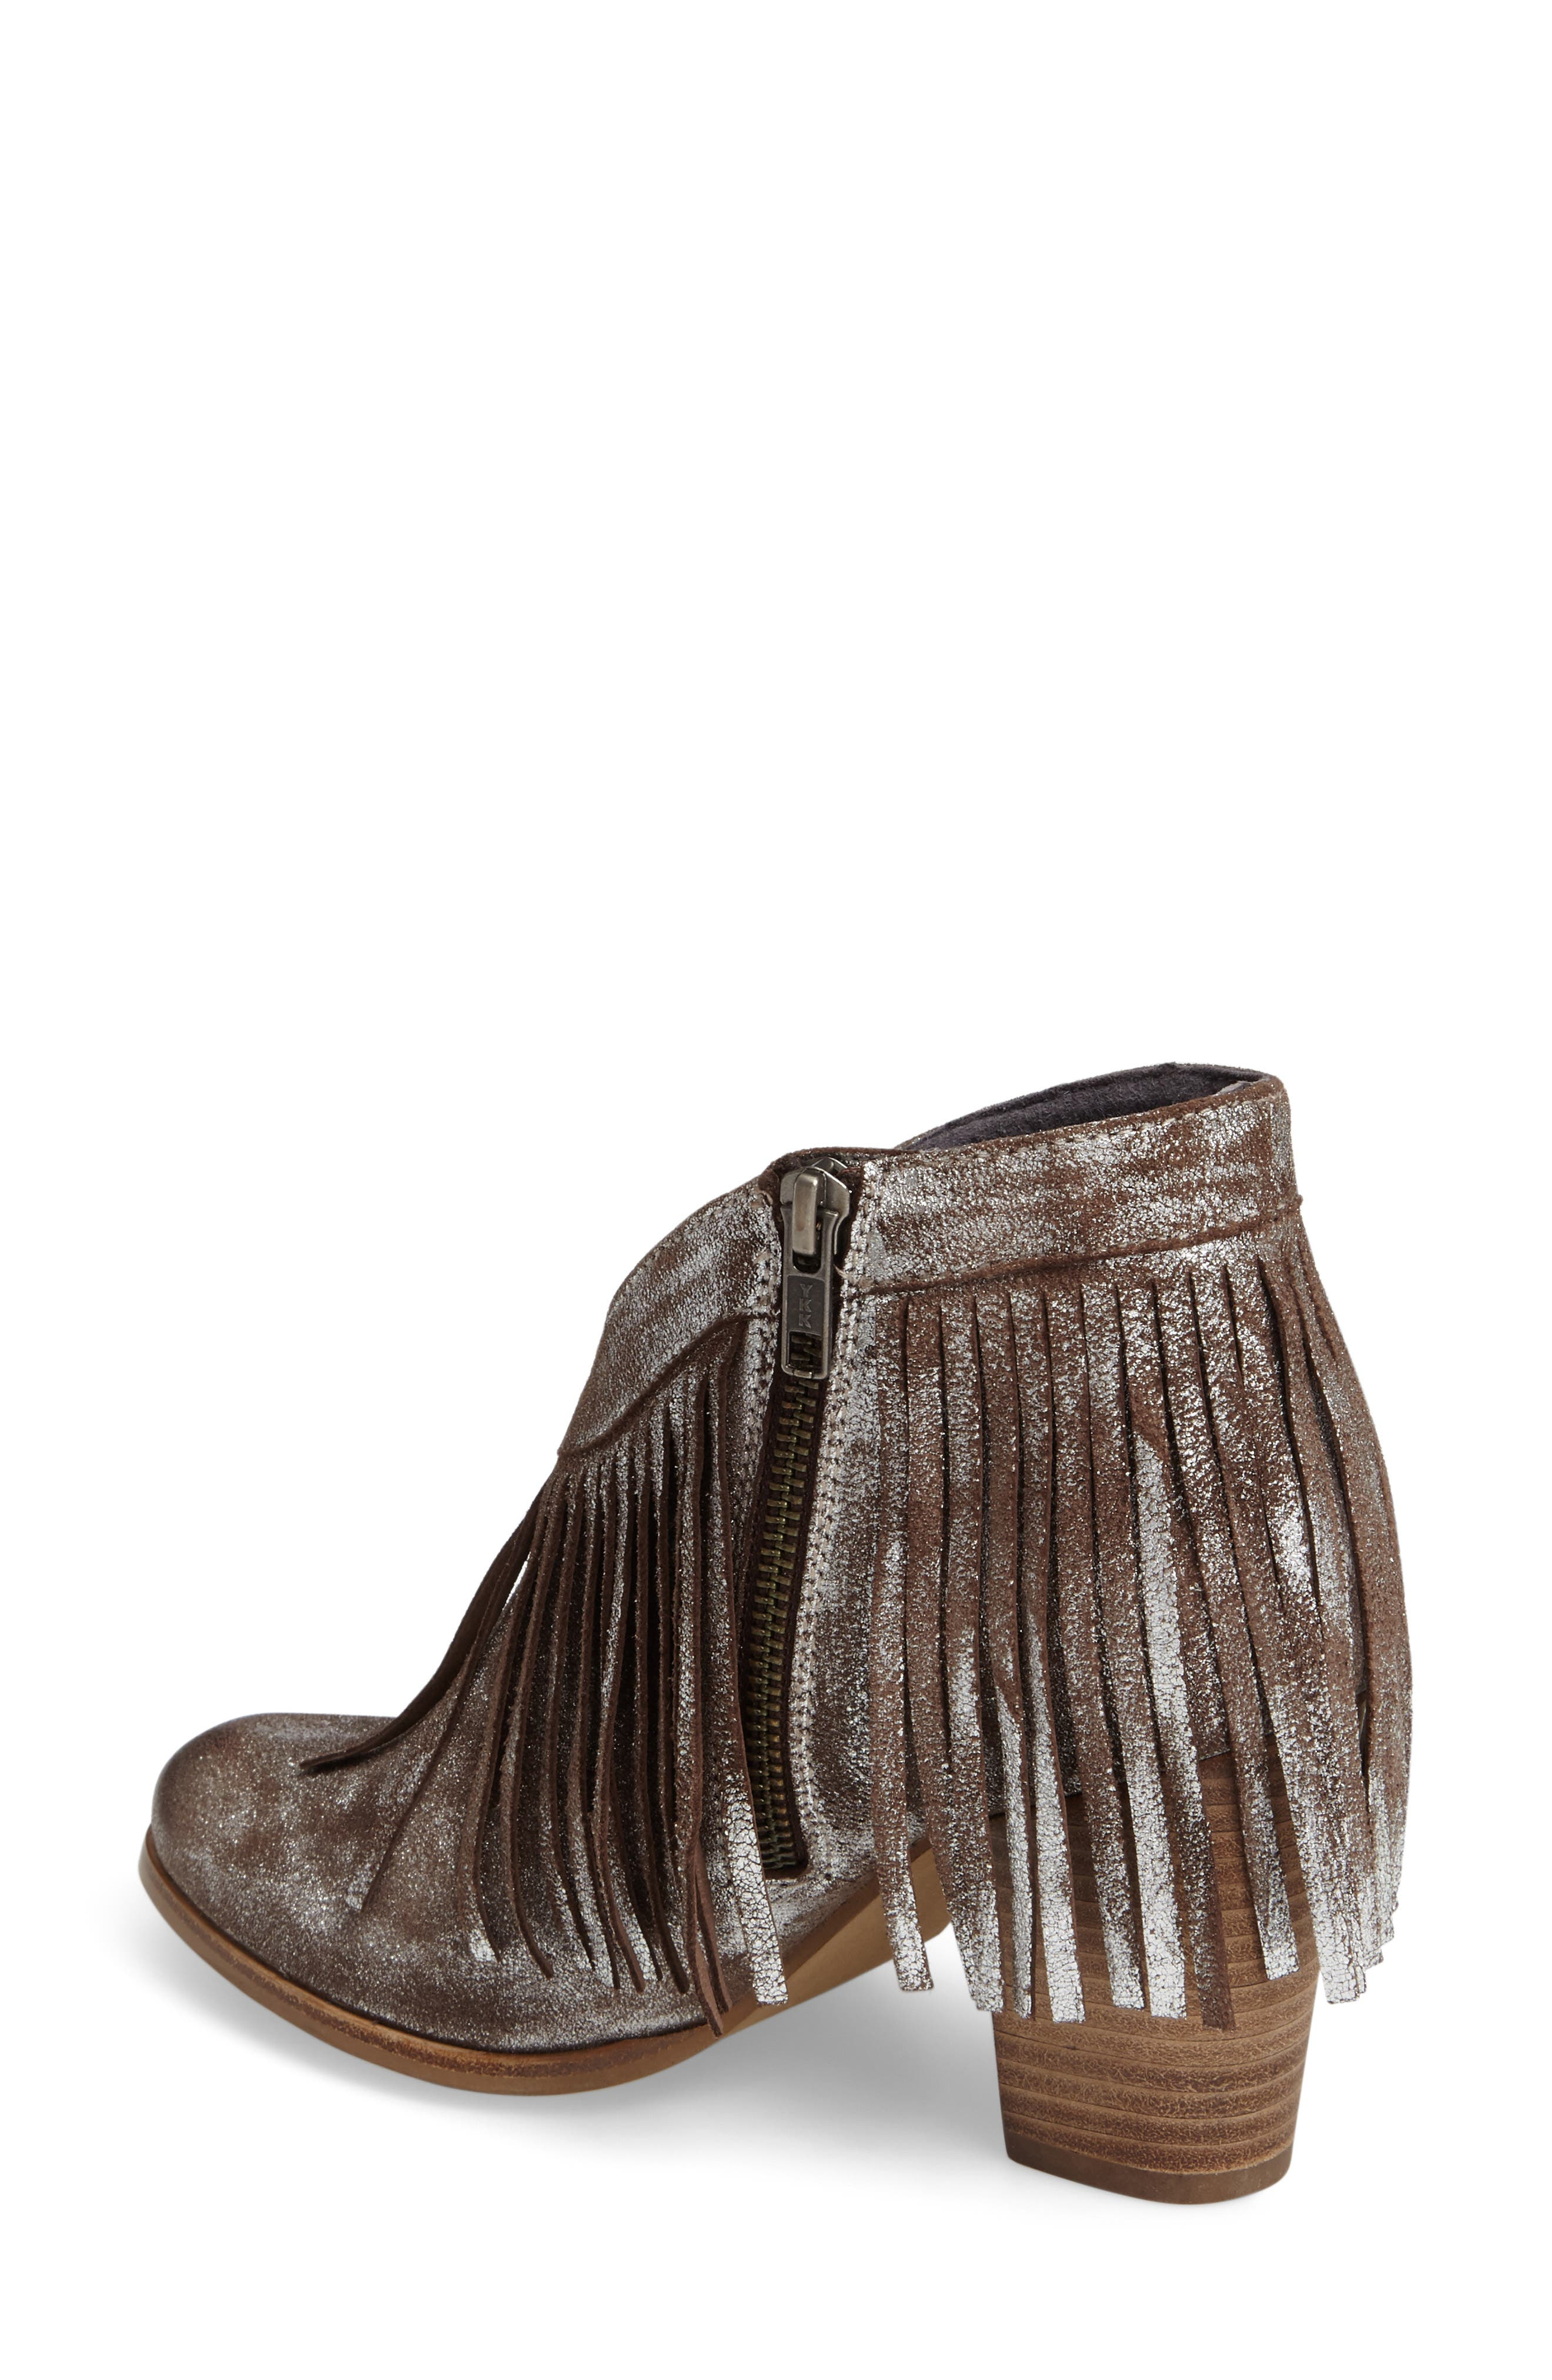 Unbridled Layla Fringed Bootie,                             Alternate thumbnail 2, color,                             040